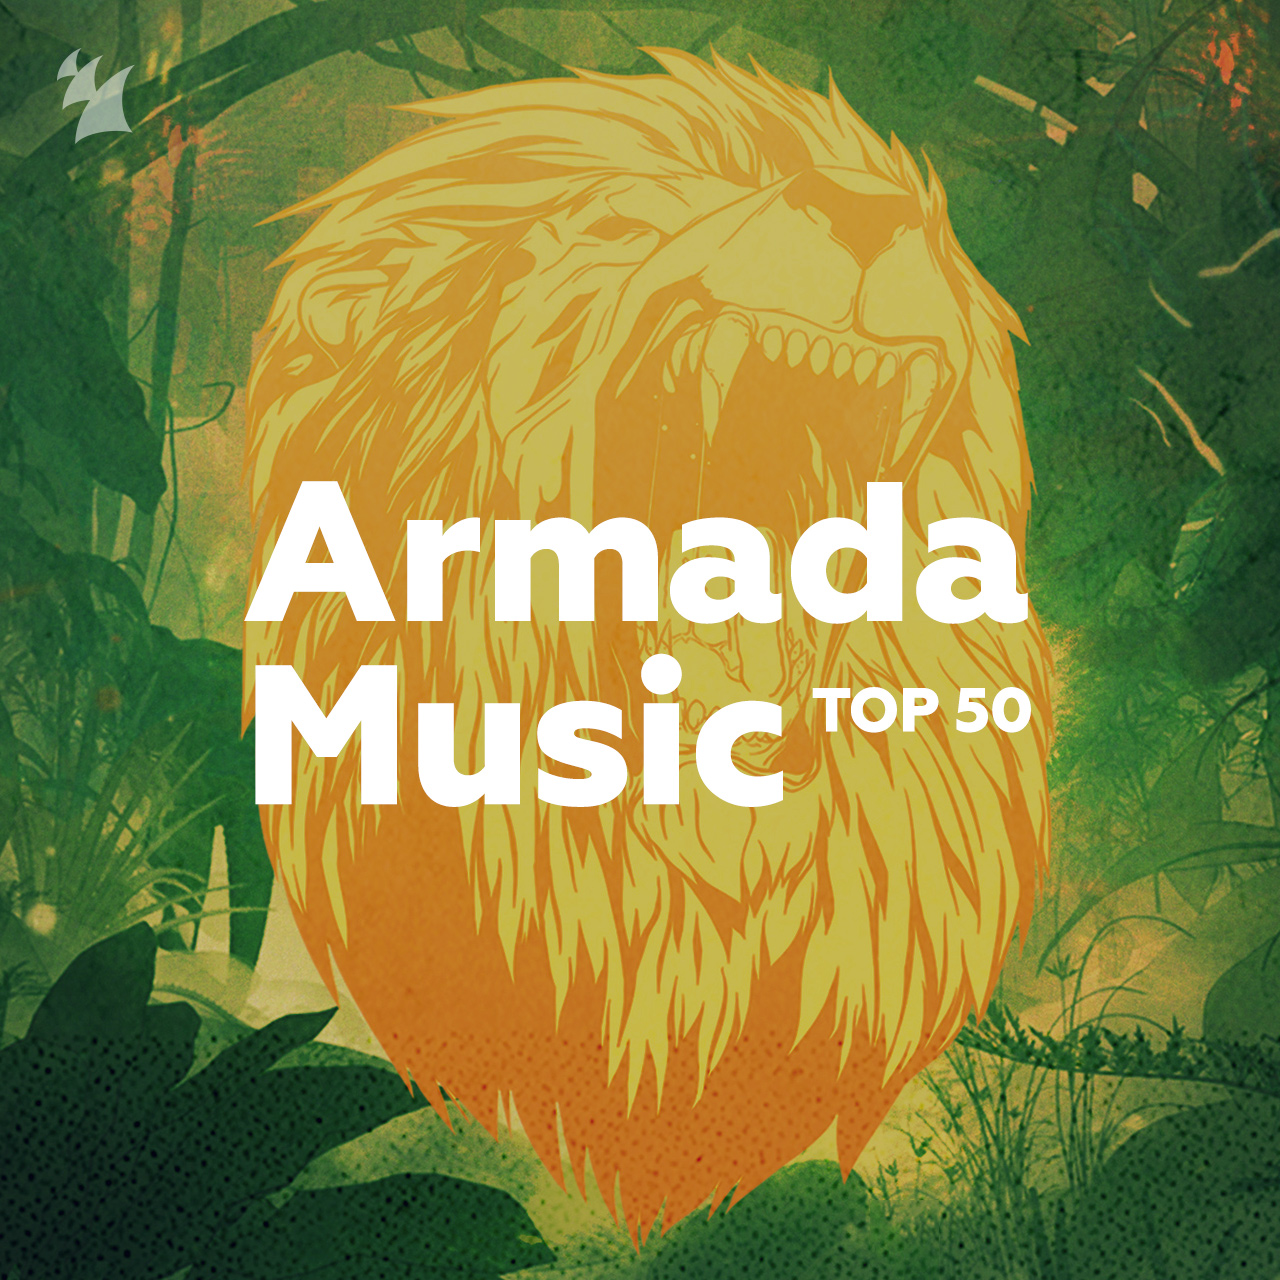 Armada Music Top 50